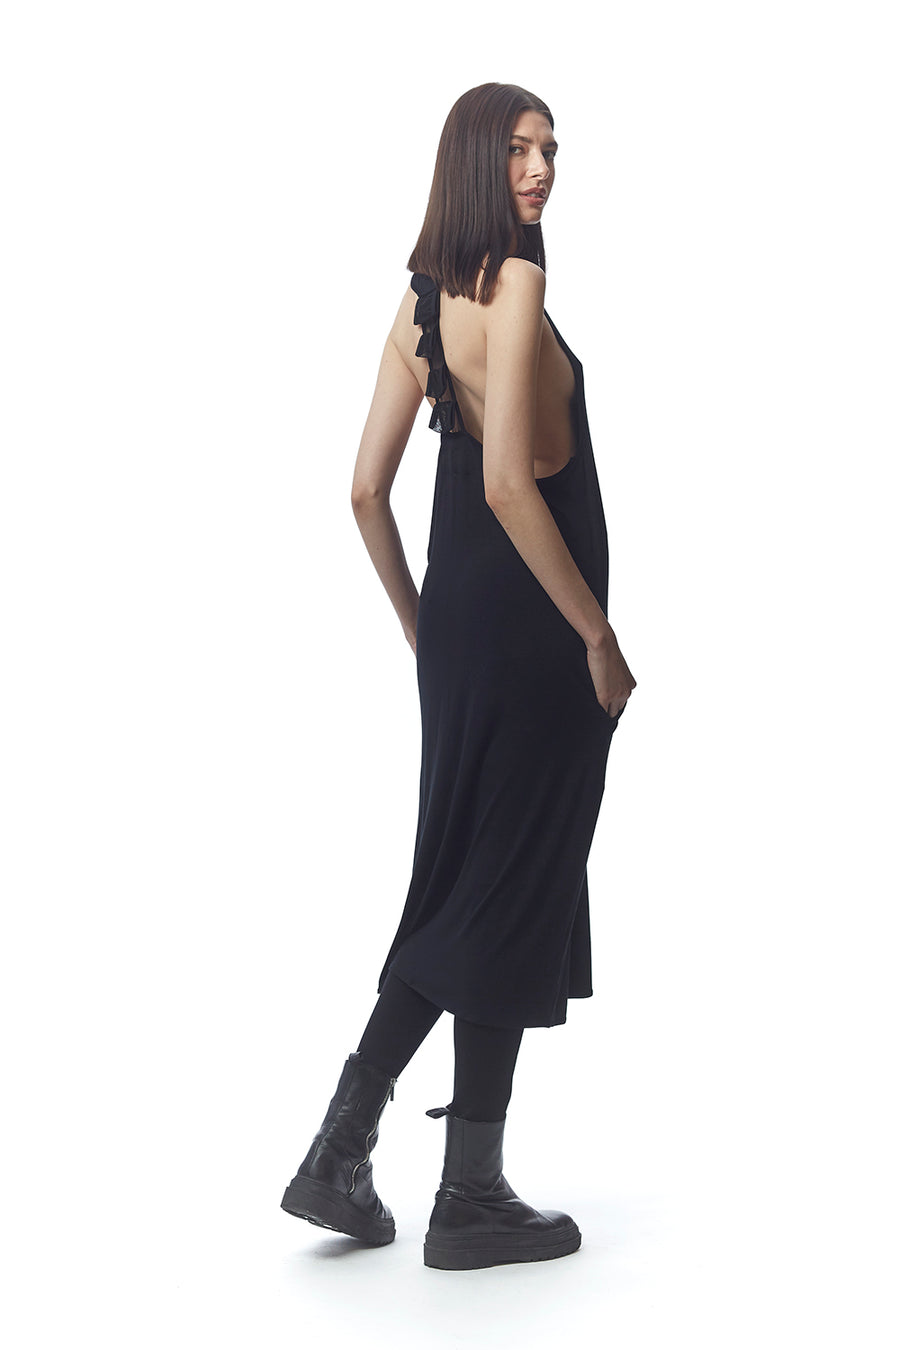 Vibonati Vertebrae T-Back Dress